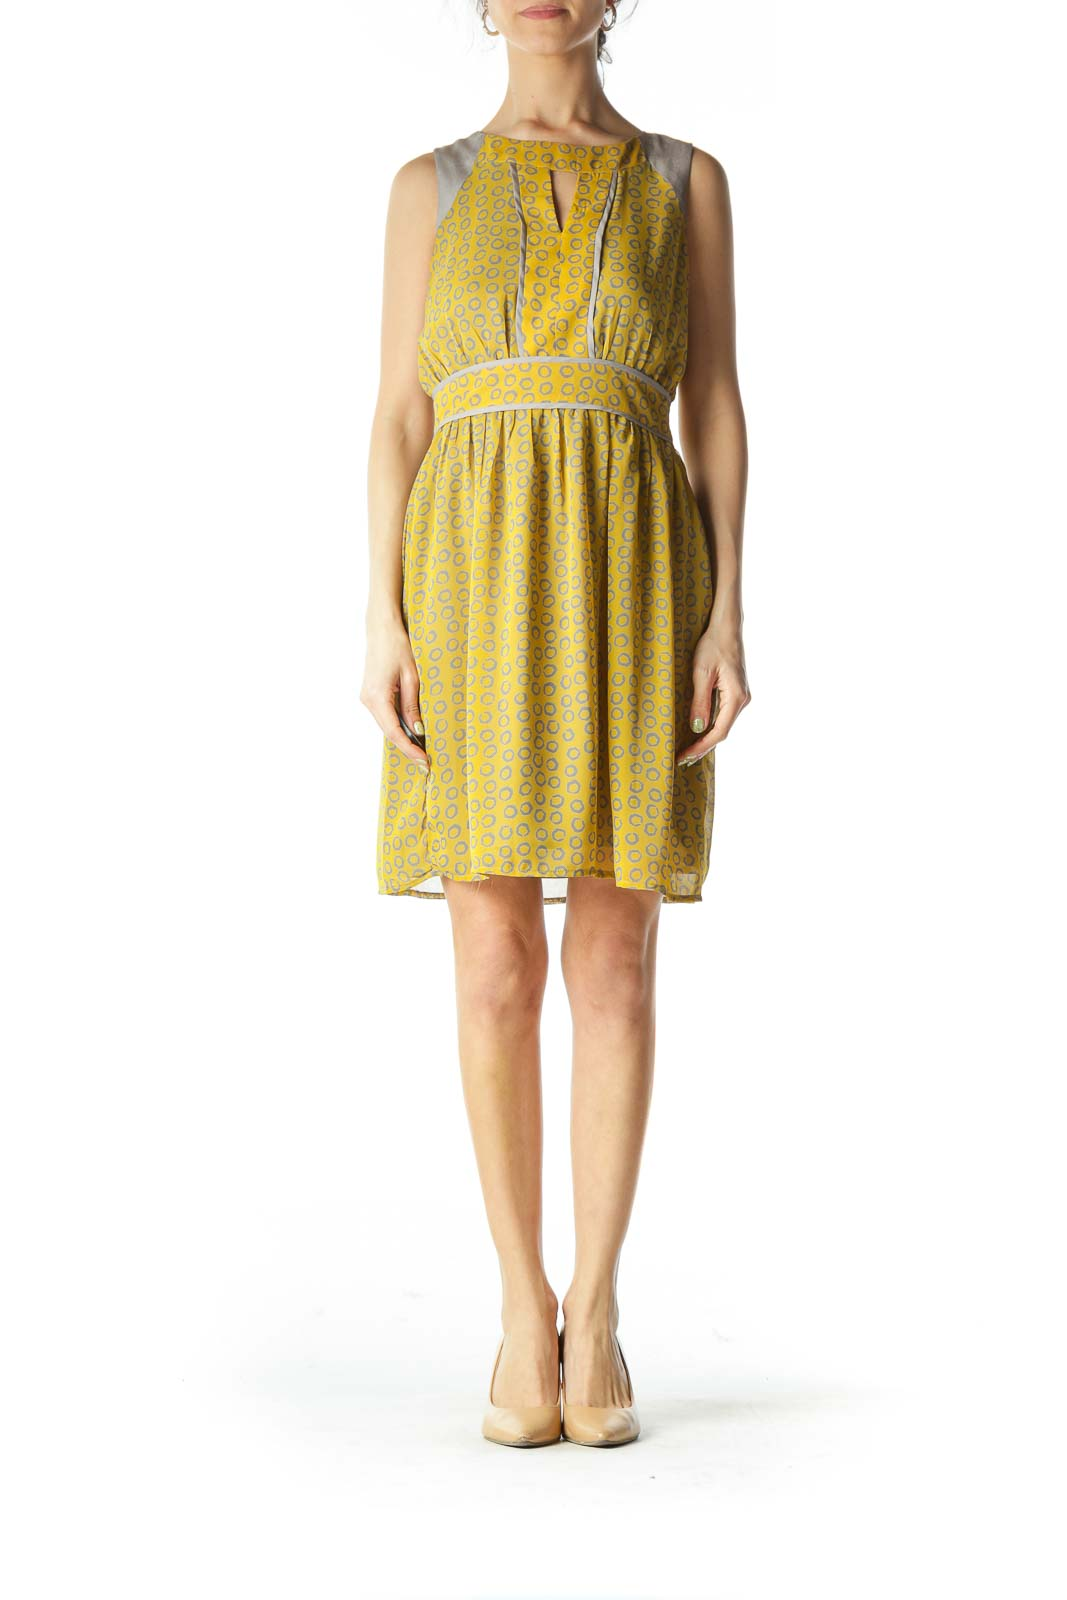 Gray and Yellow Circle-Patterned Peep-Hole Day Dress